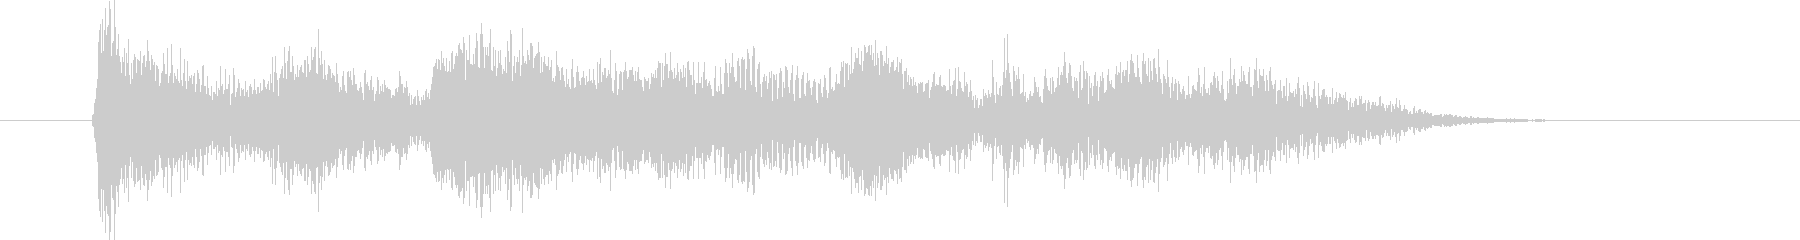 Please finish the work's unreproduced waveform